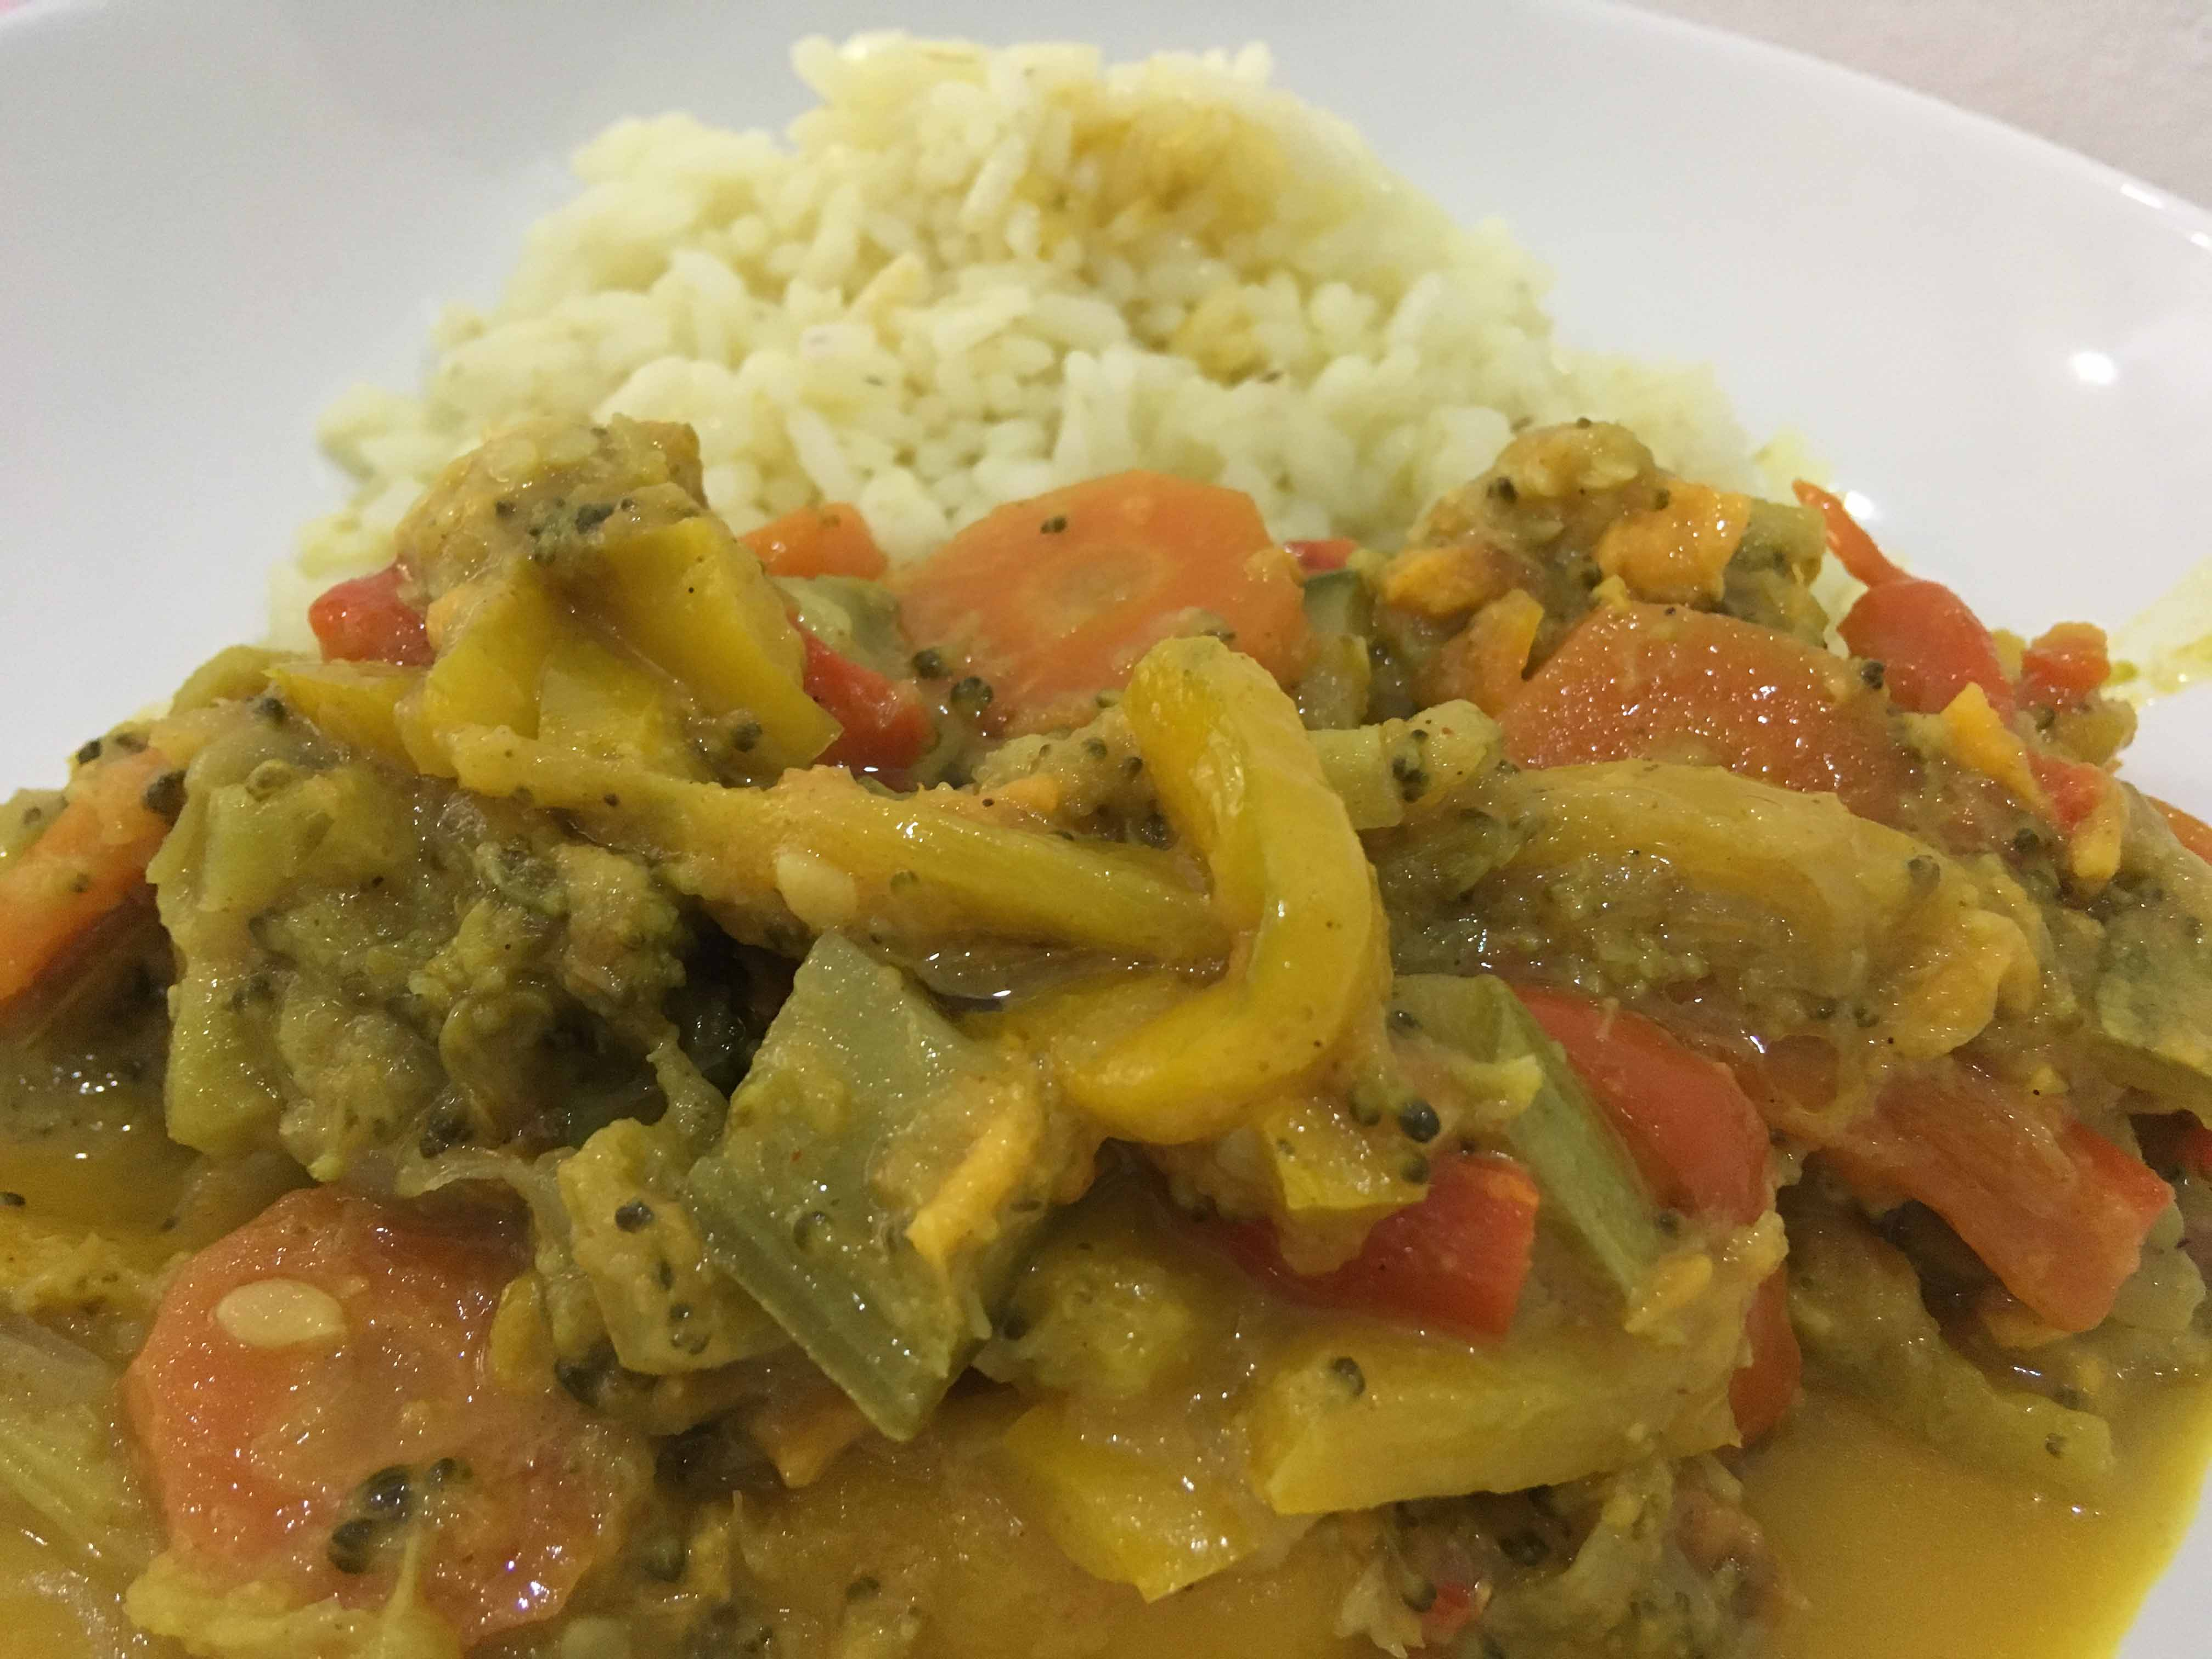 Curry di verdure con latte di coccoOriginally Posted on 8 August 2017 and reposted on 3 January 2018